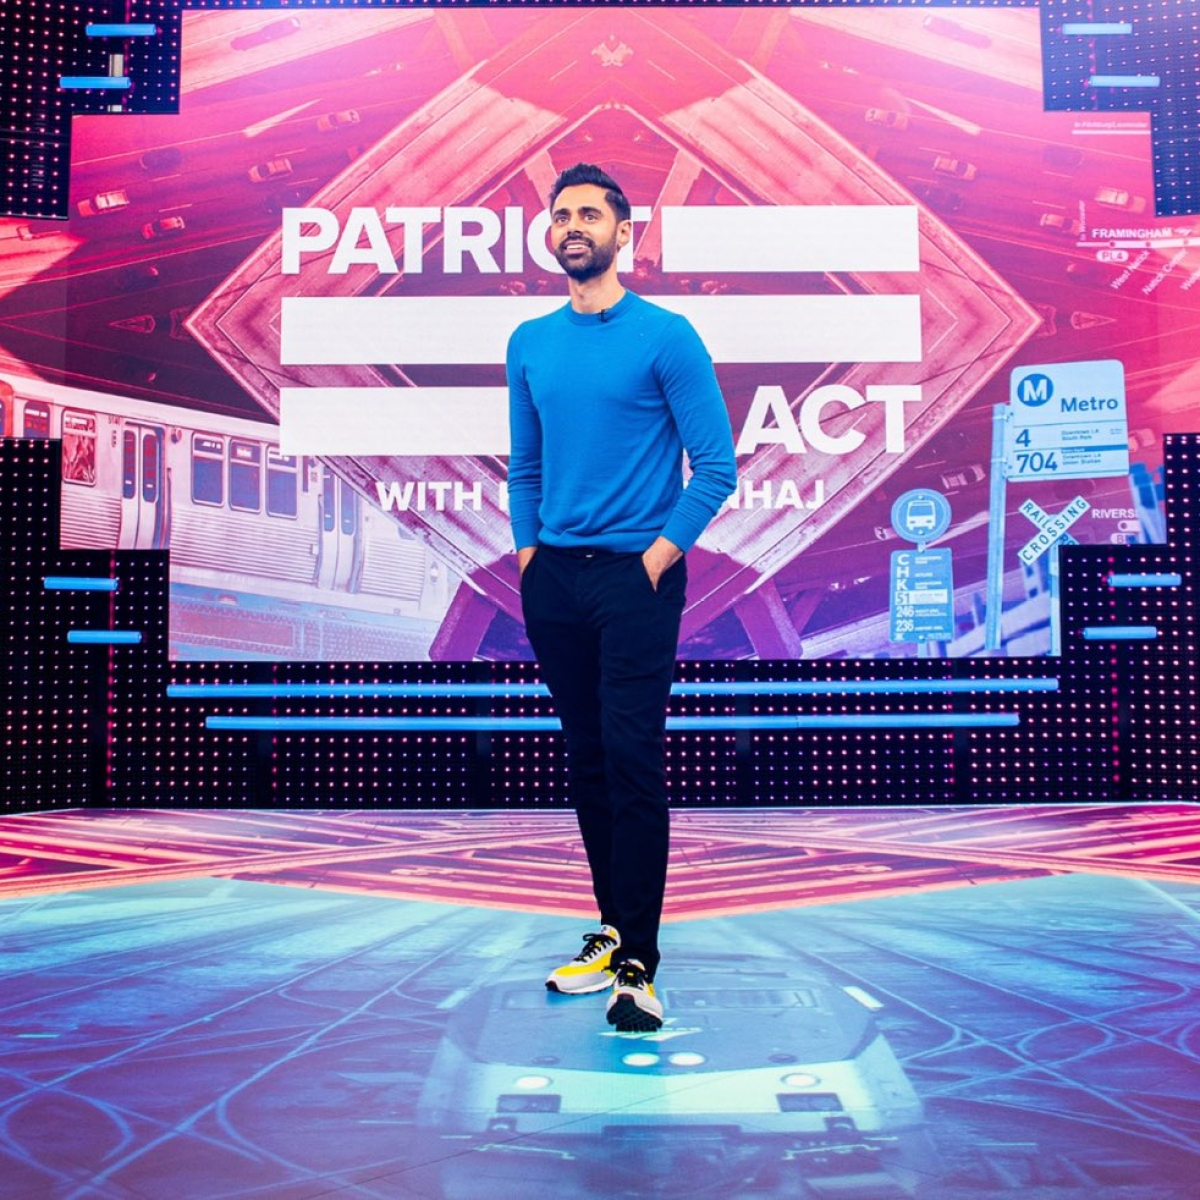 Cancelling the wrong  'Patriot Act': Tweeple react to Netflix announcing end of Hasan Minhaj's show